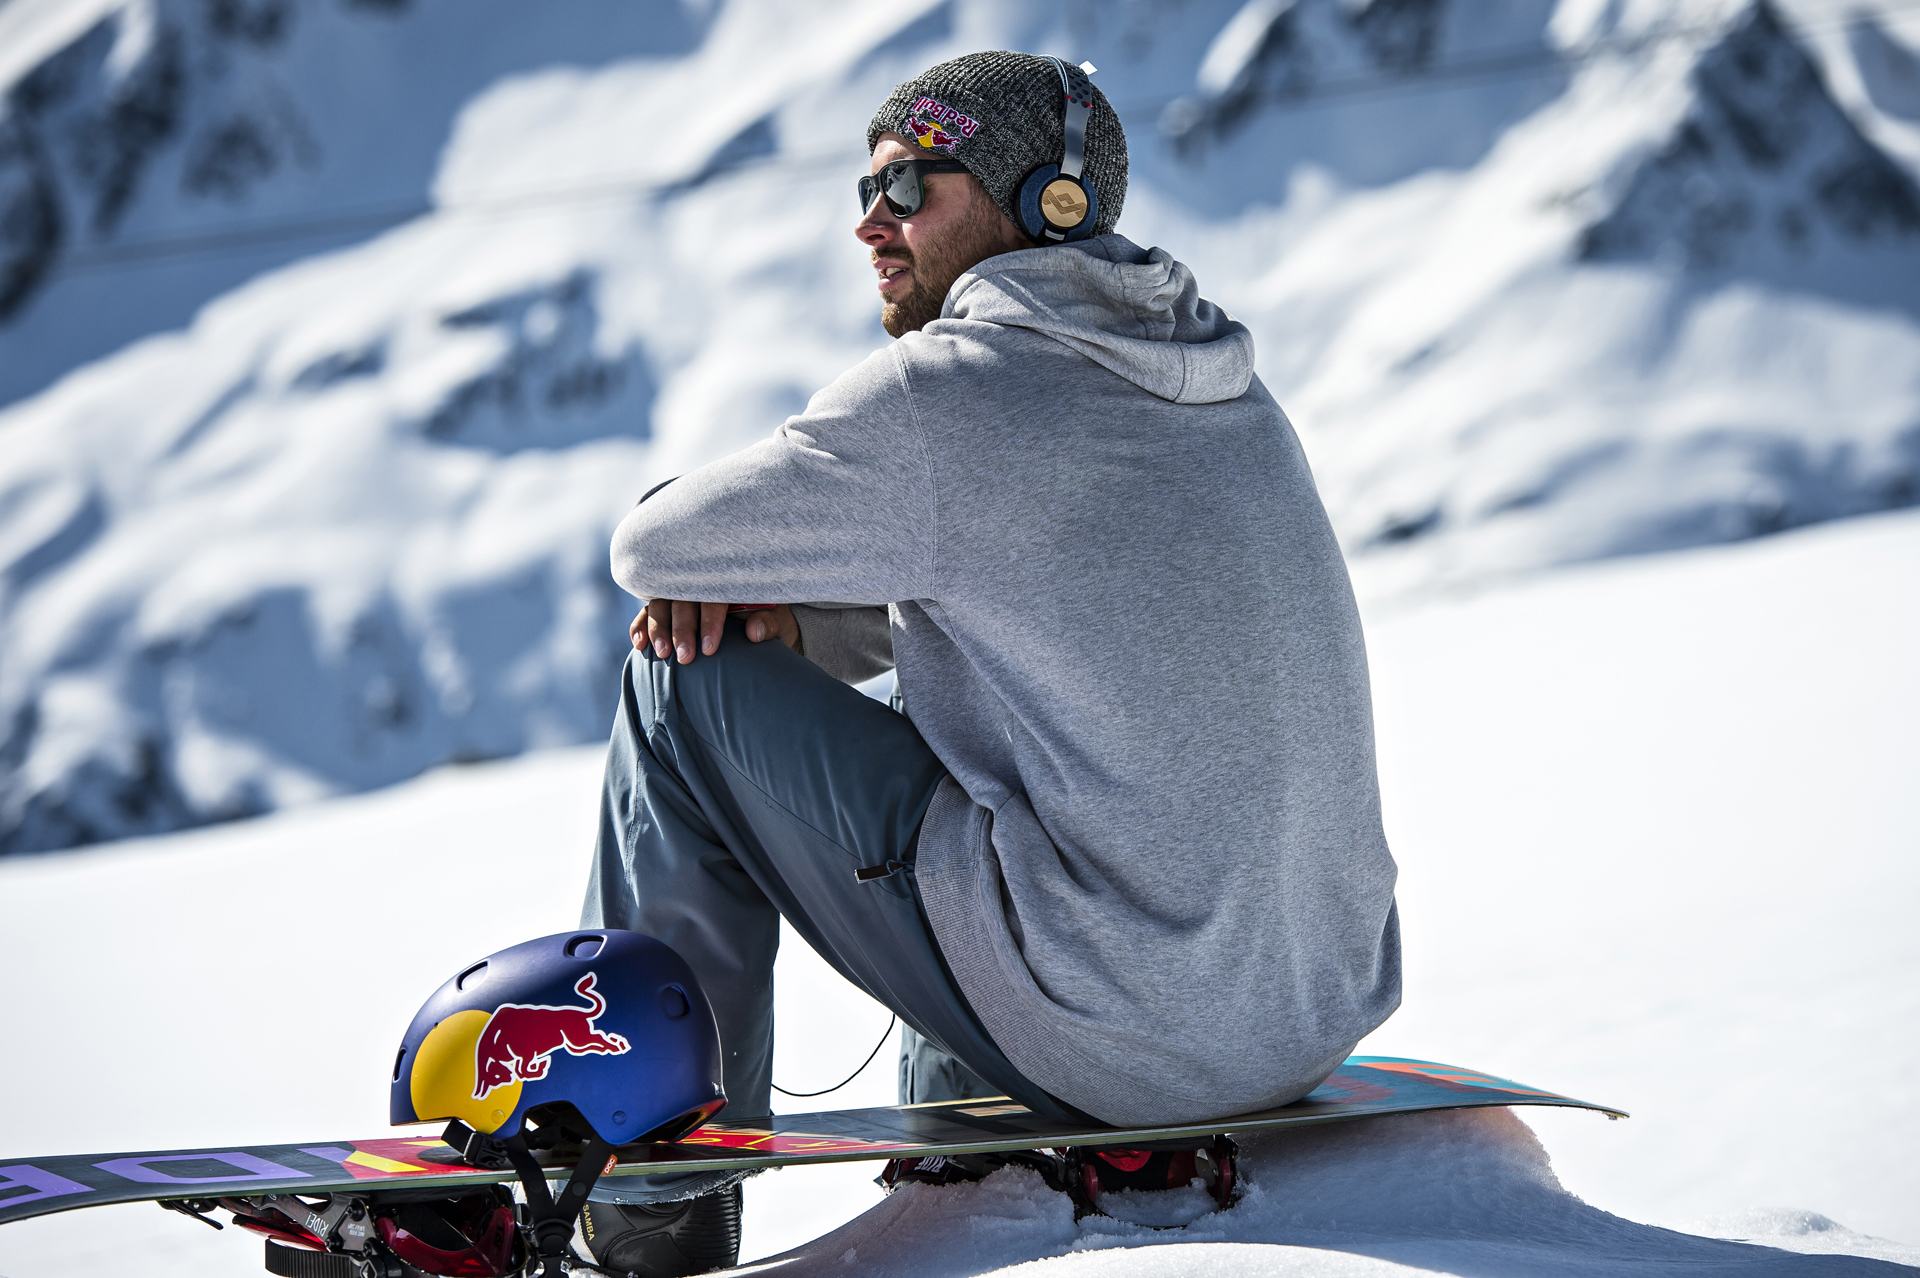 Billy Morgan in Sölden, Österreich - Foto: Pally Learmond / Red Bull Content Pool